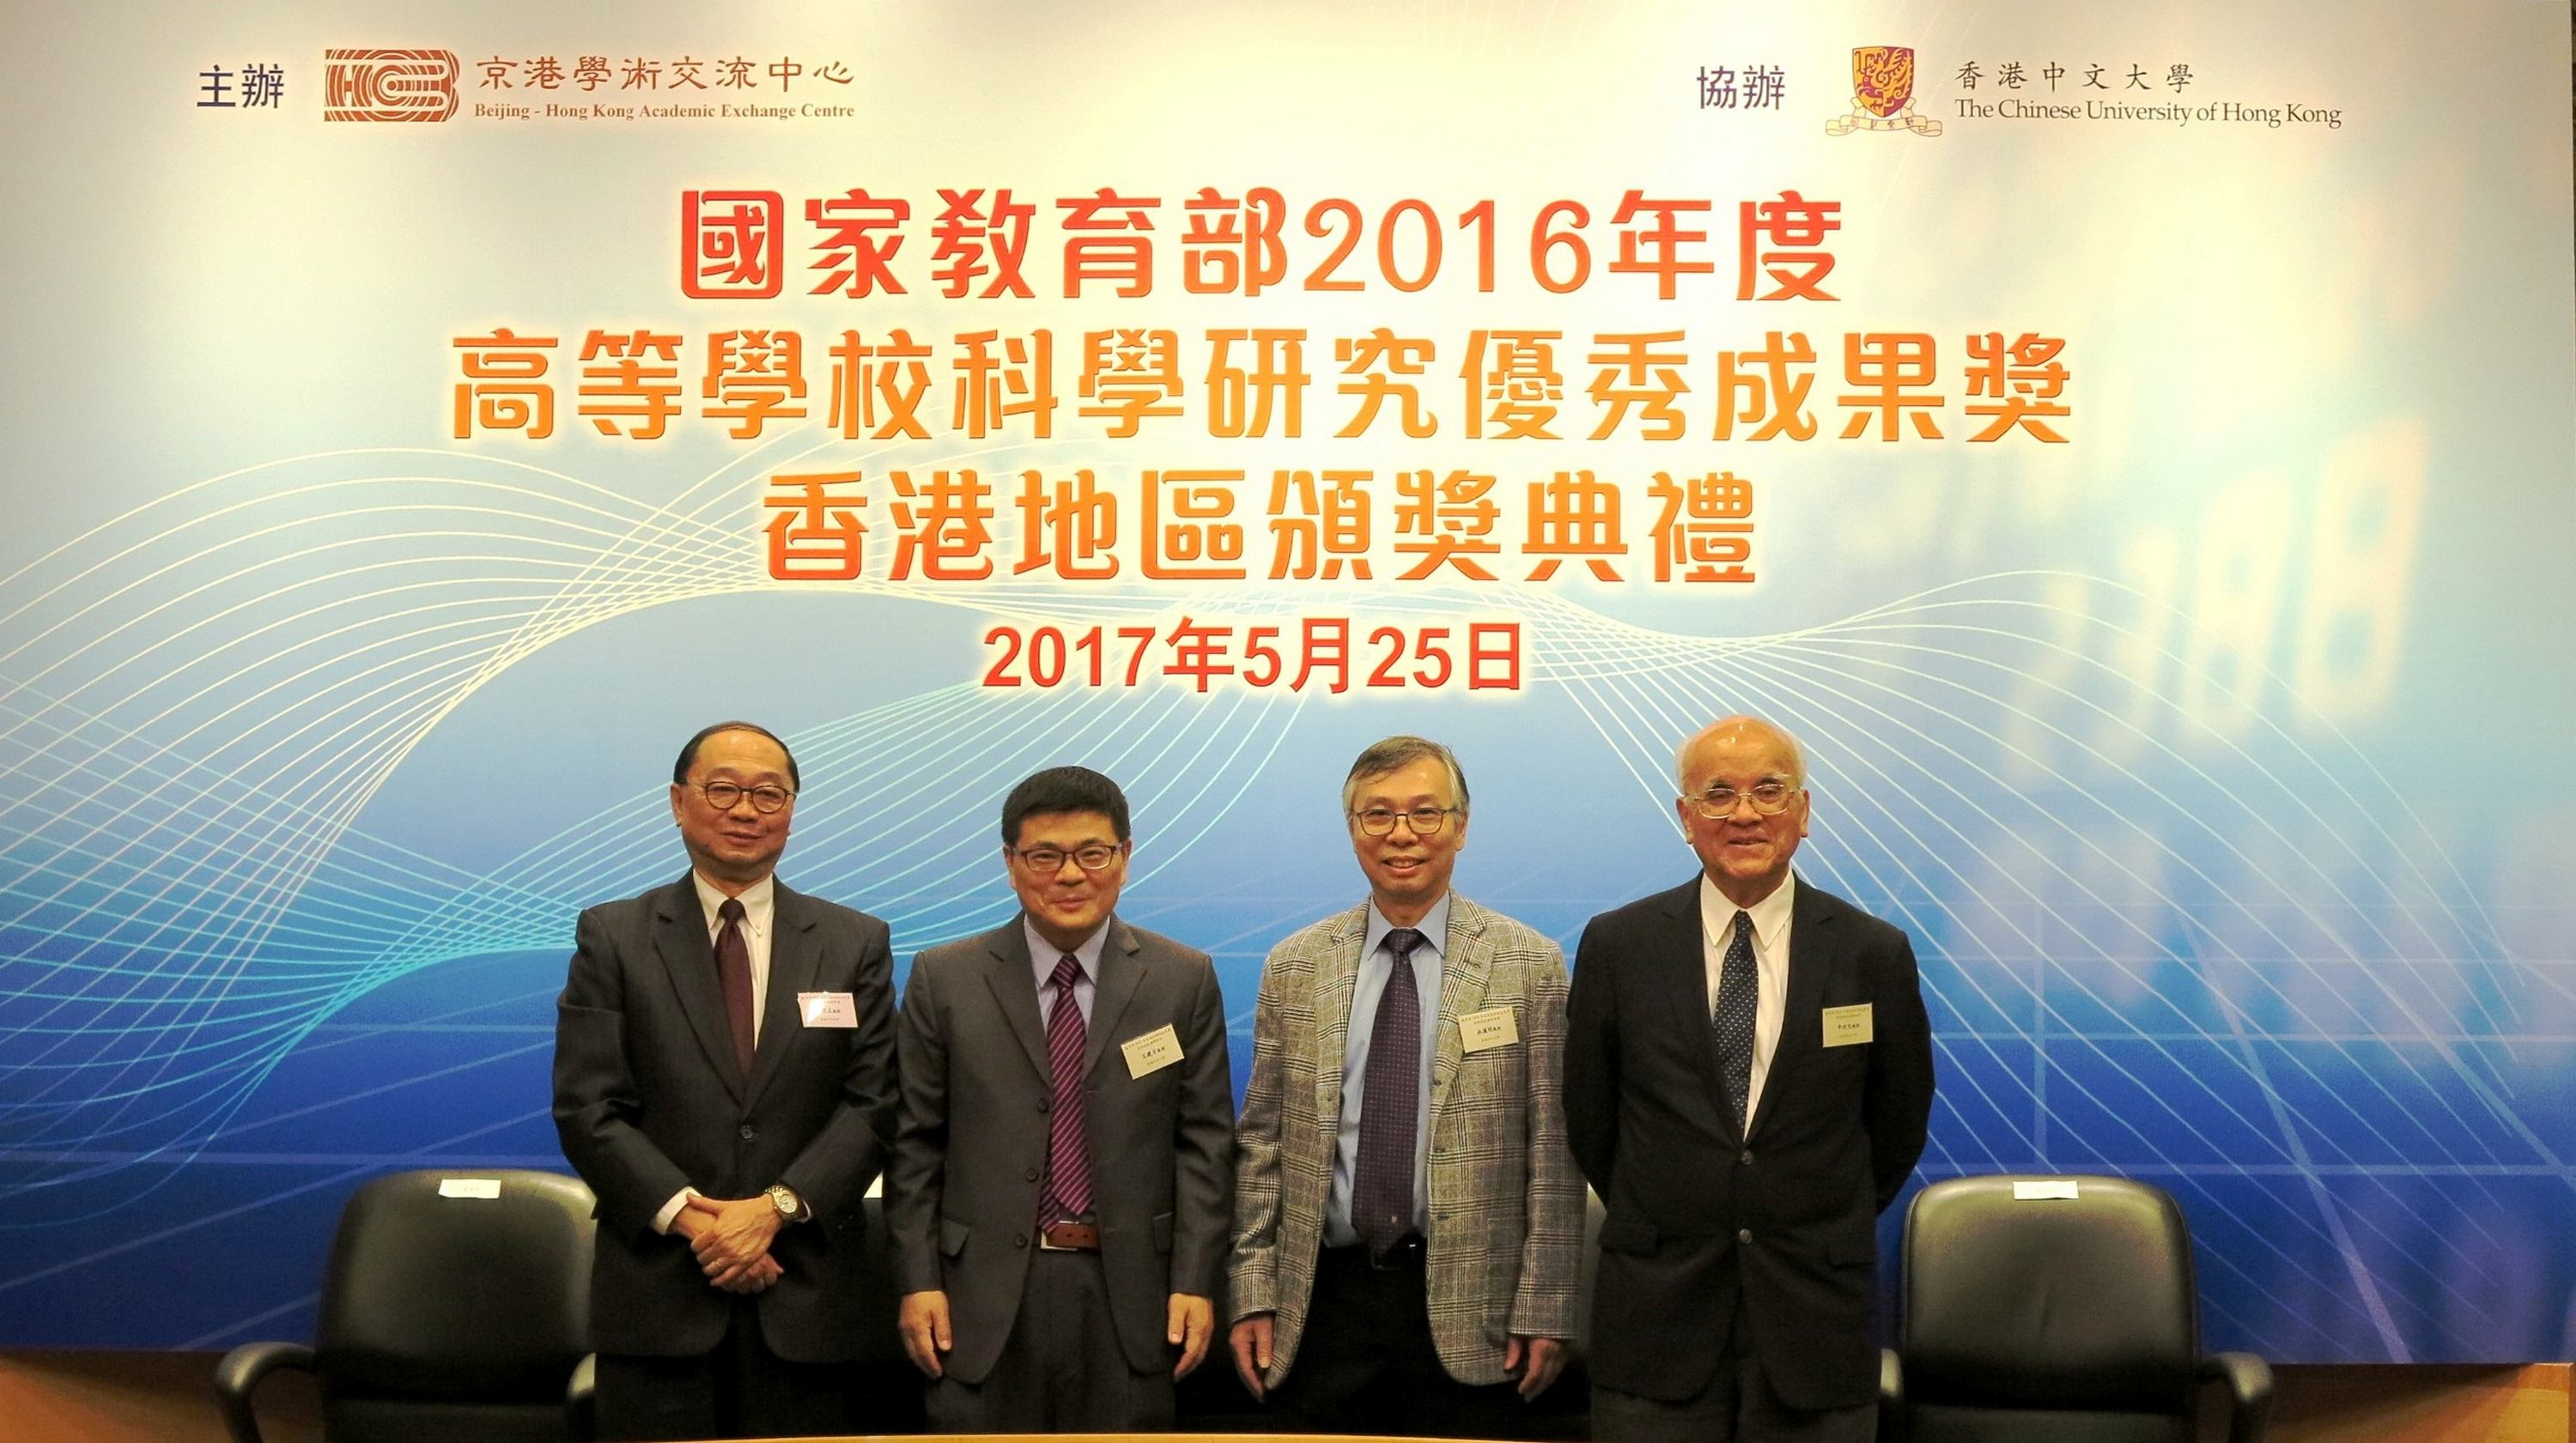 (From left) Prof. Henry Wong, Dean of the Faculty of Science; Prof. Wang Jian-fang, Department of Physics; Prof. Lam Hon-ming and Prof. Samuel Sun, School of Life Sciences, CUHK.